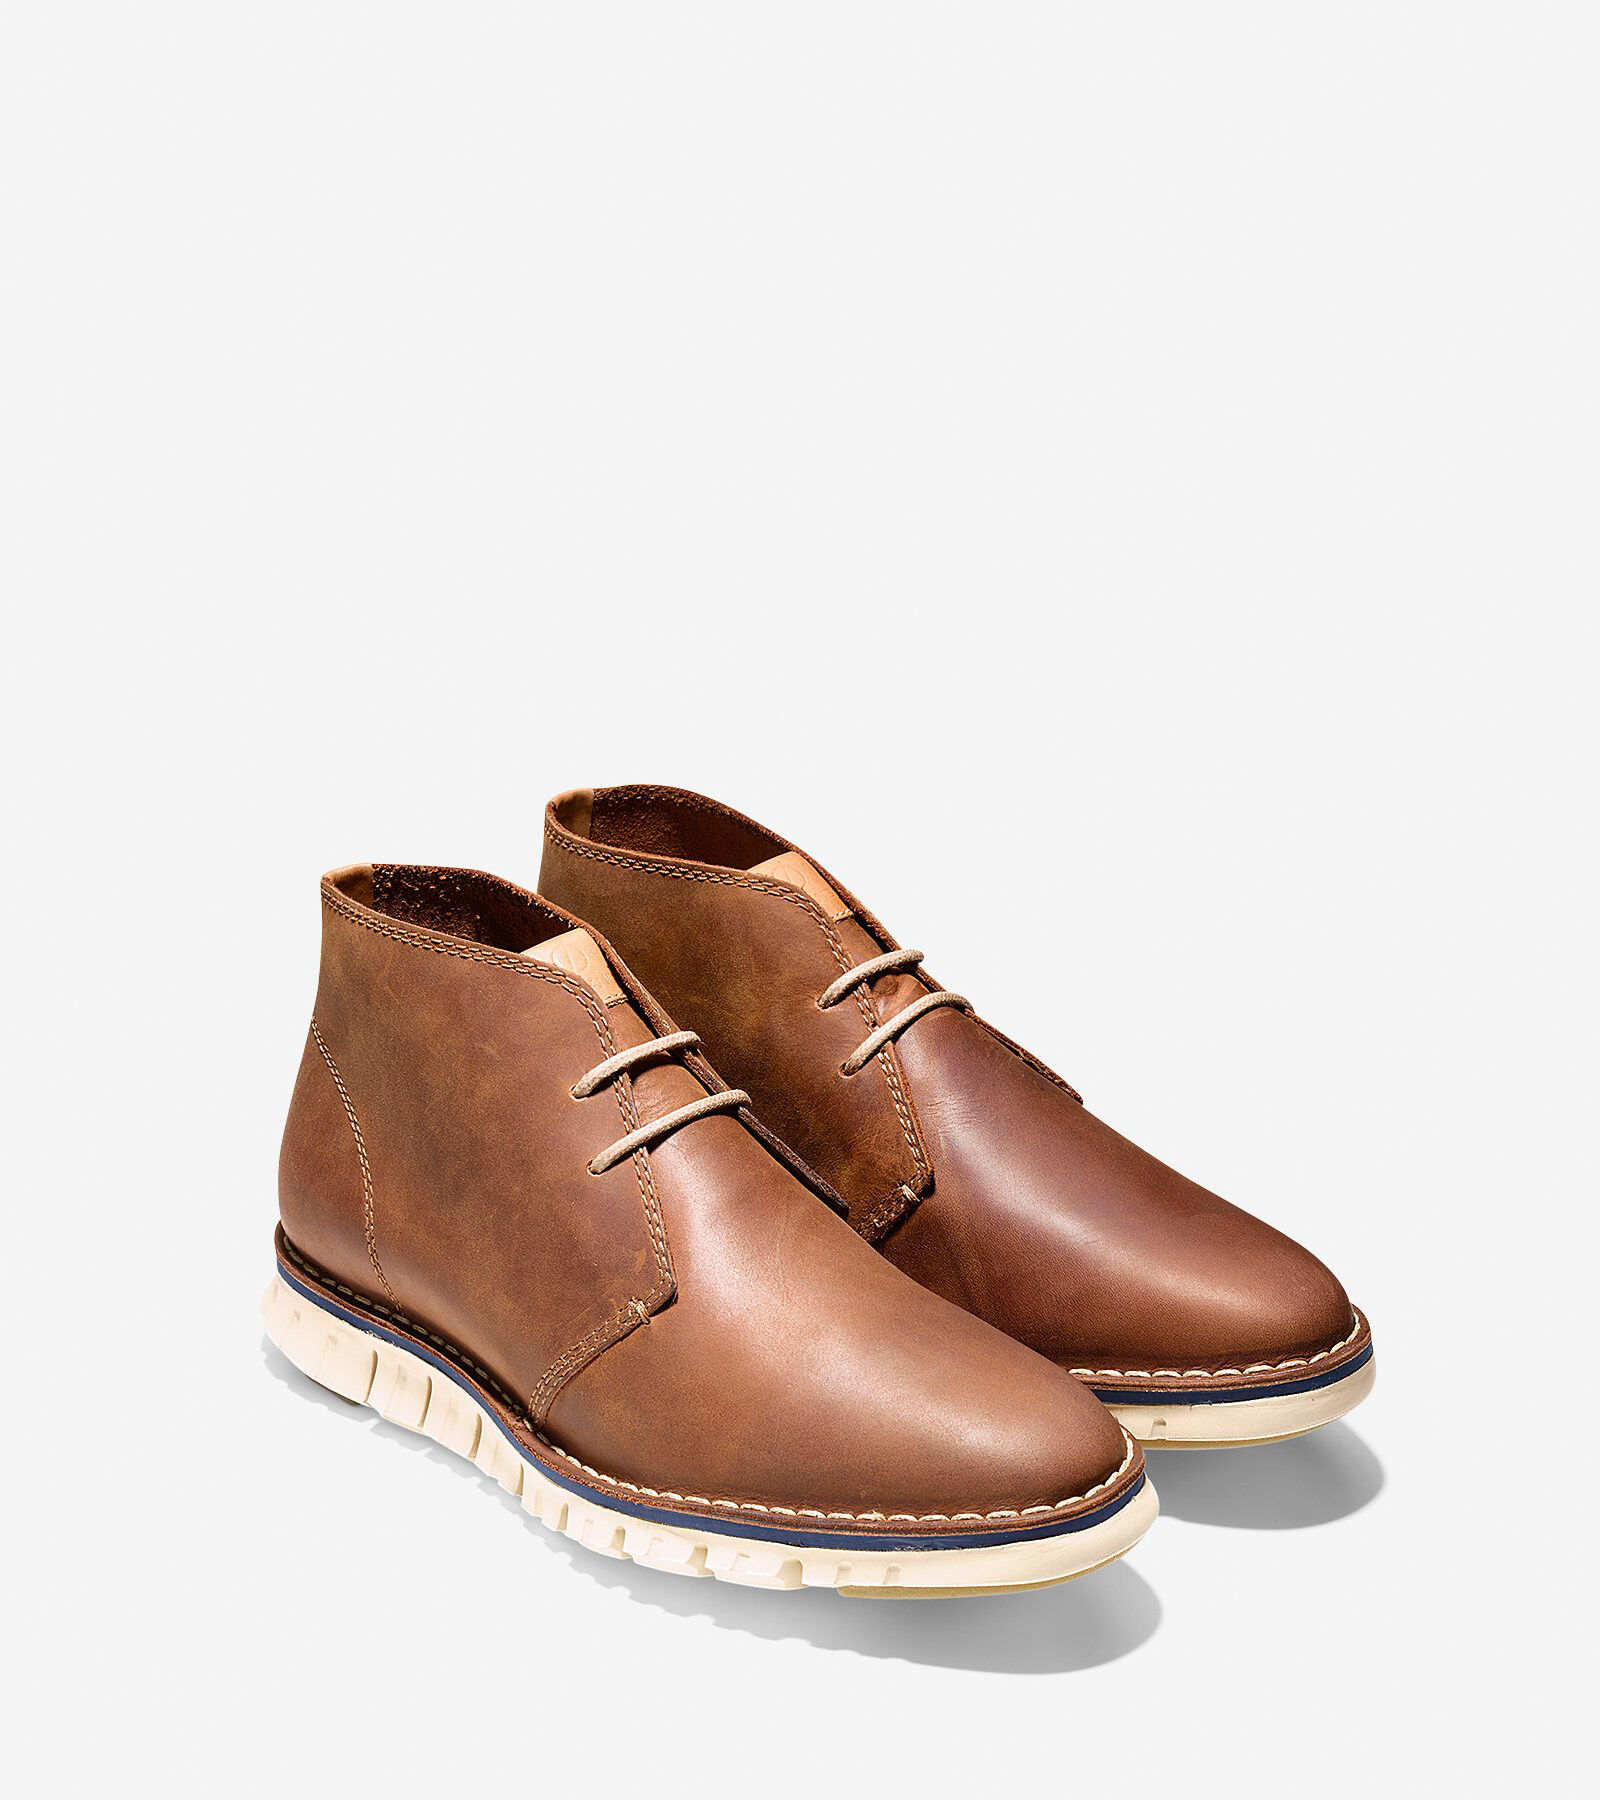 ... Men's ZERØGRAND Stitch Out Chukka; Men's ZERØGRAND Stitch Out Chukka. # colehaan